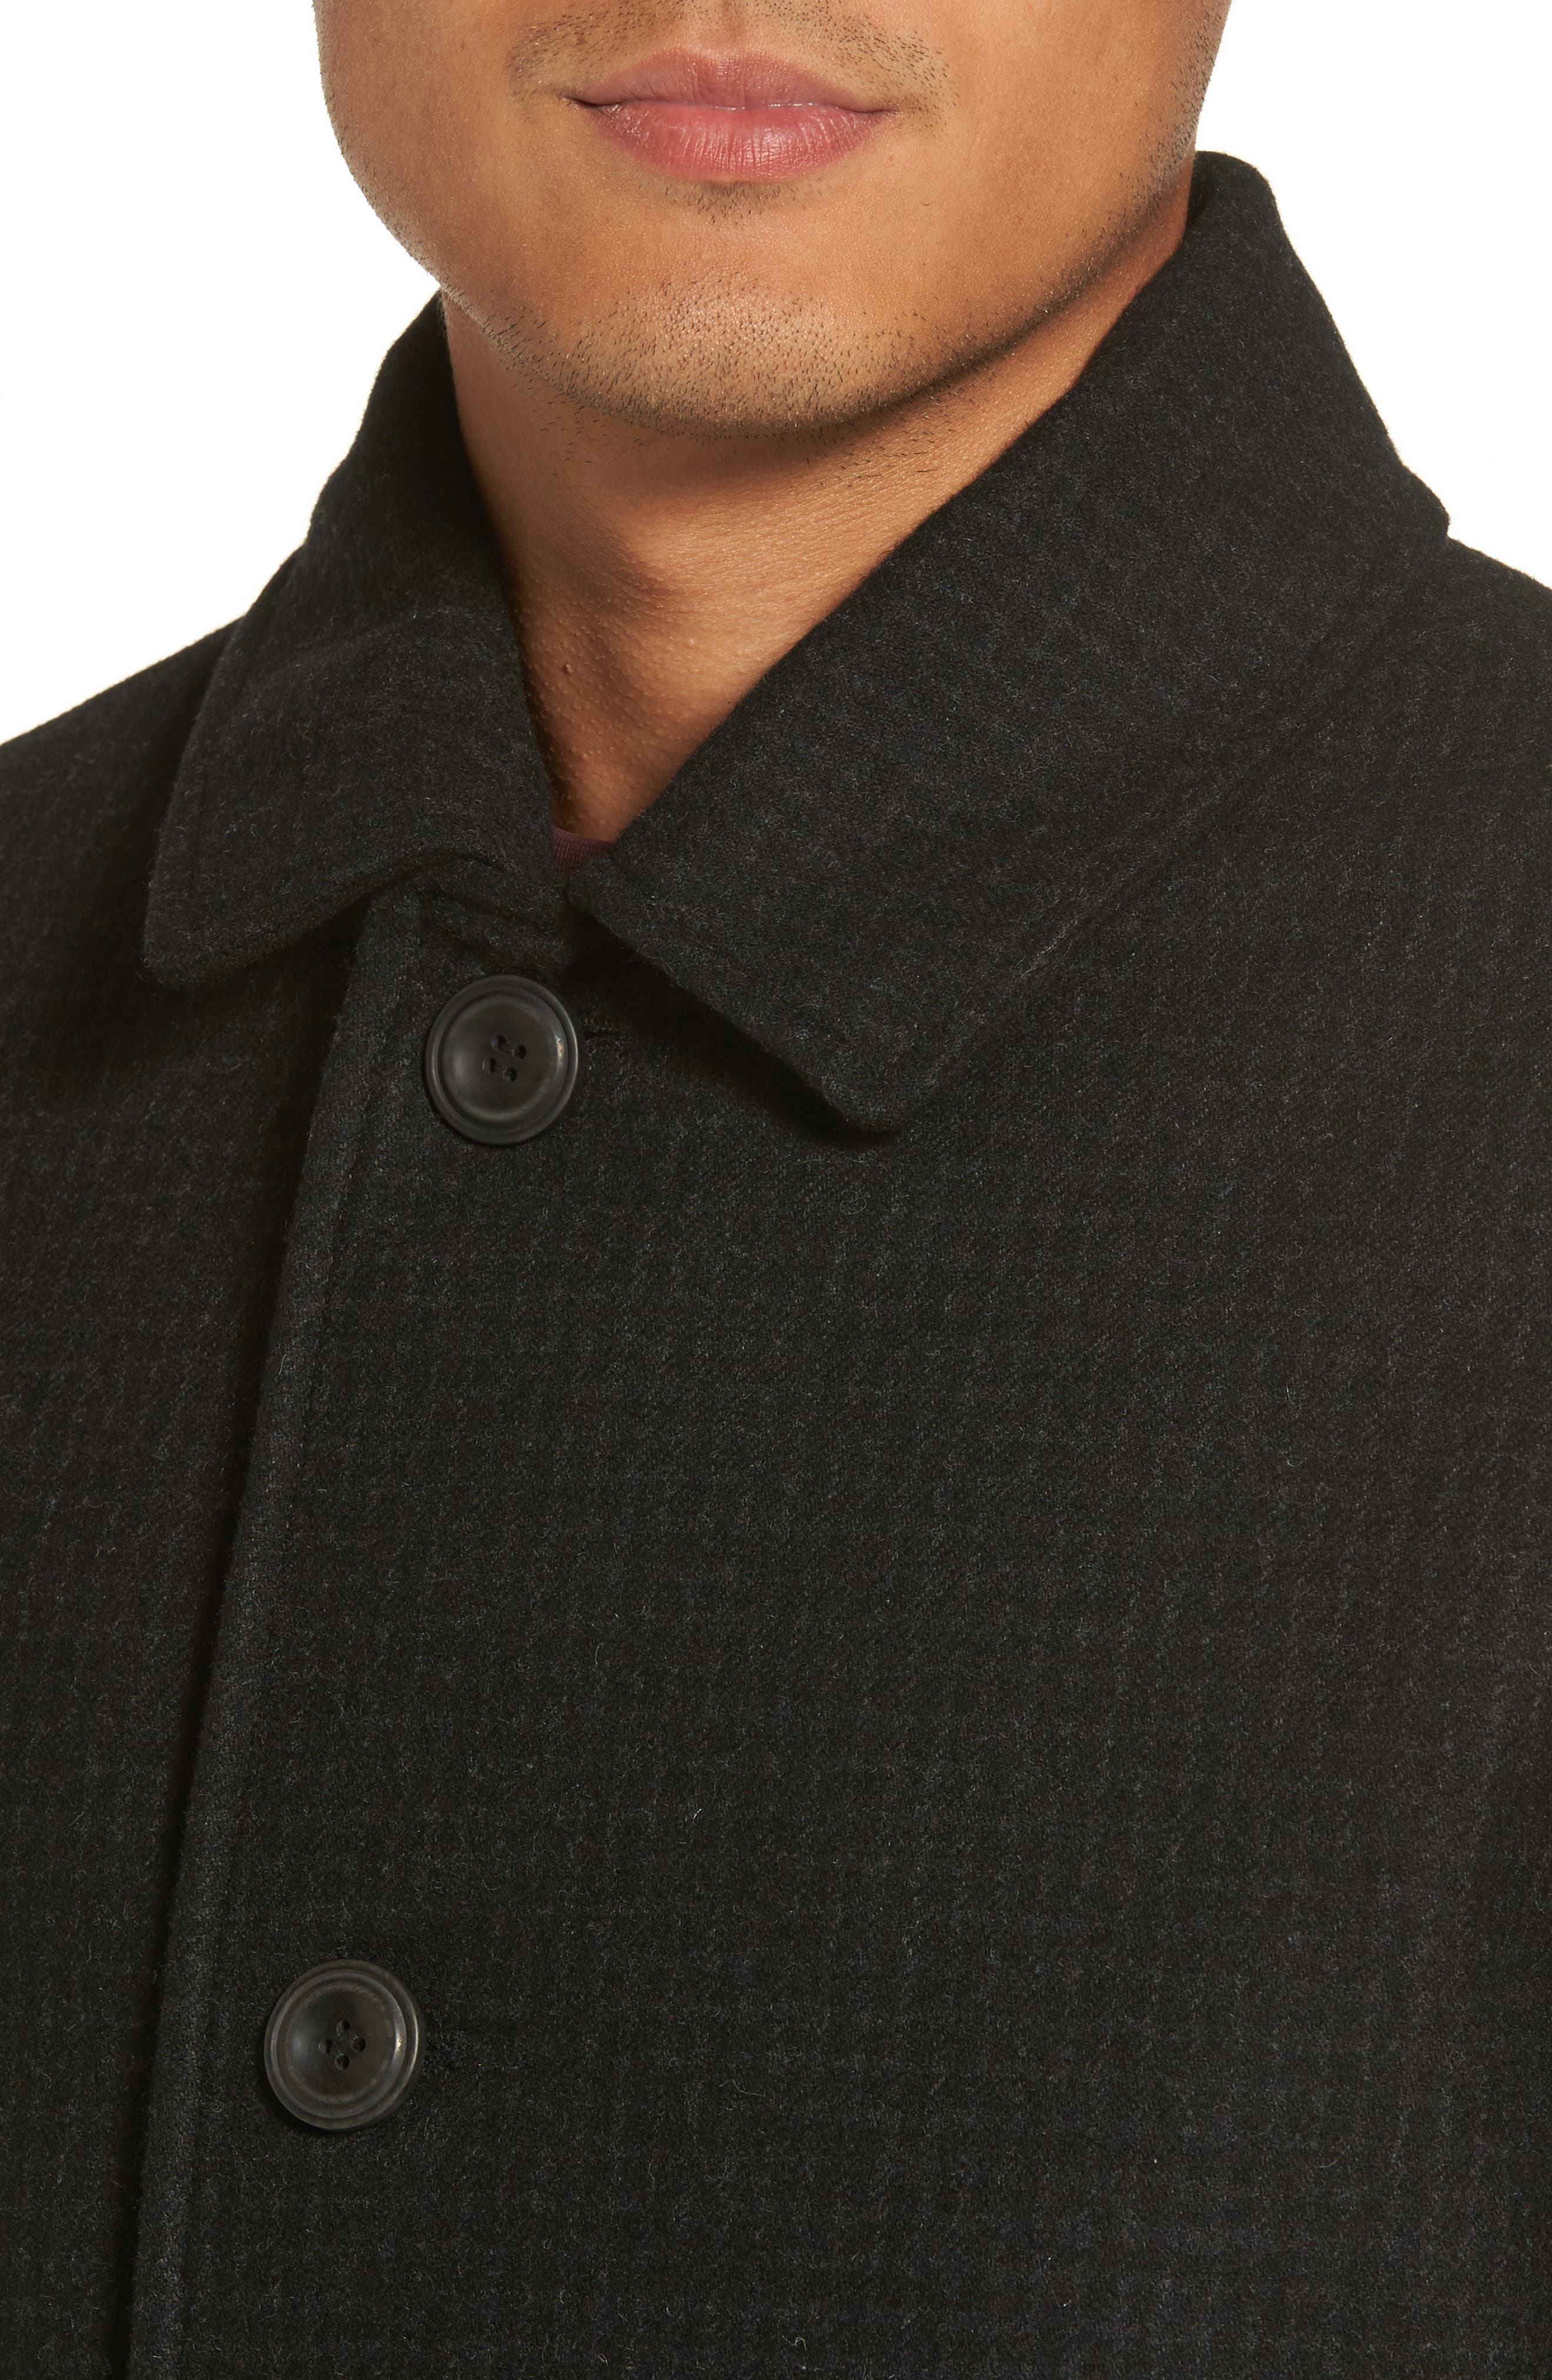 Wool Blend Car Coat,                             Alternate thumbnail 4, color,                             001